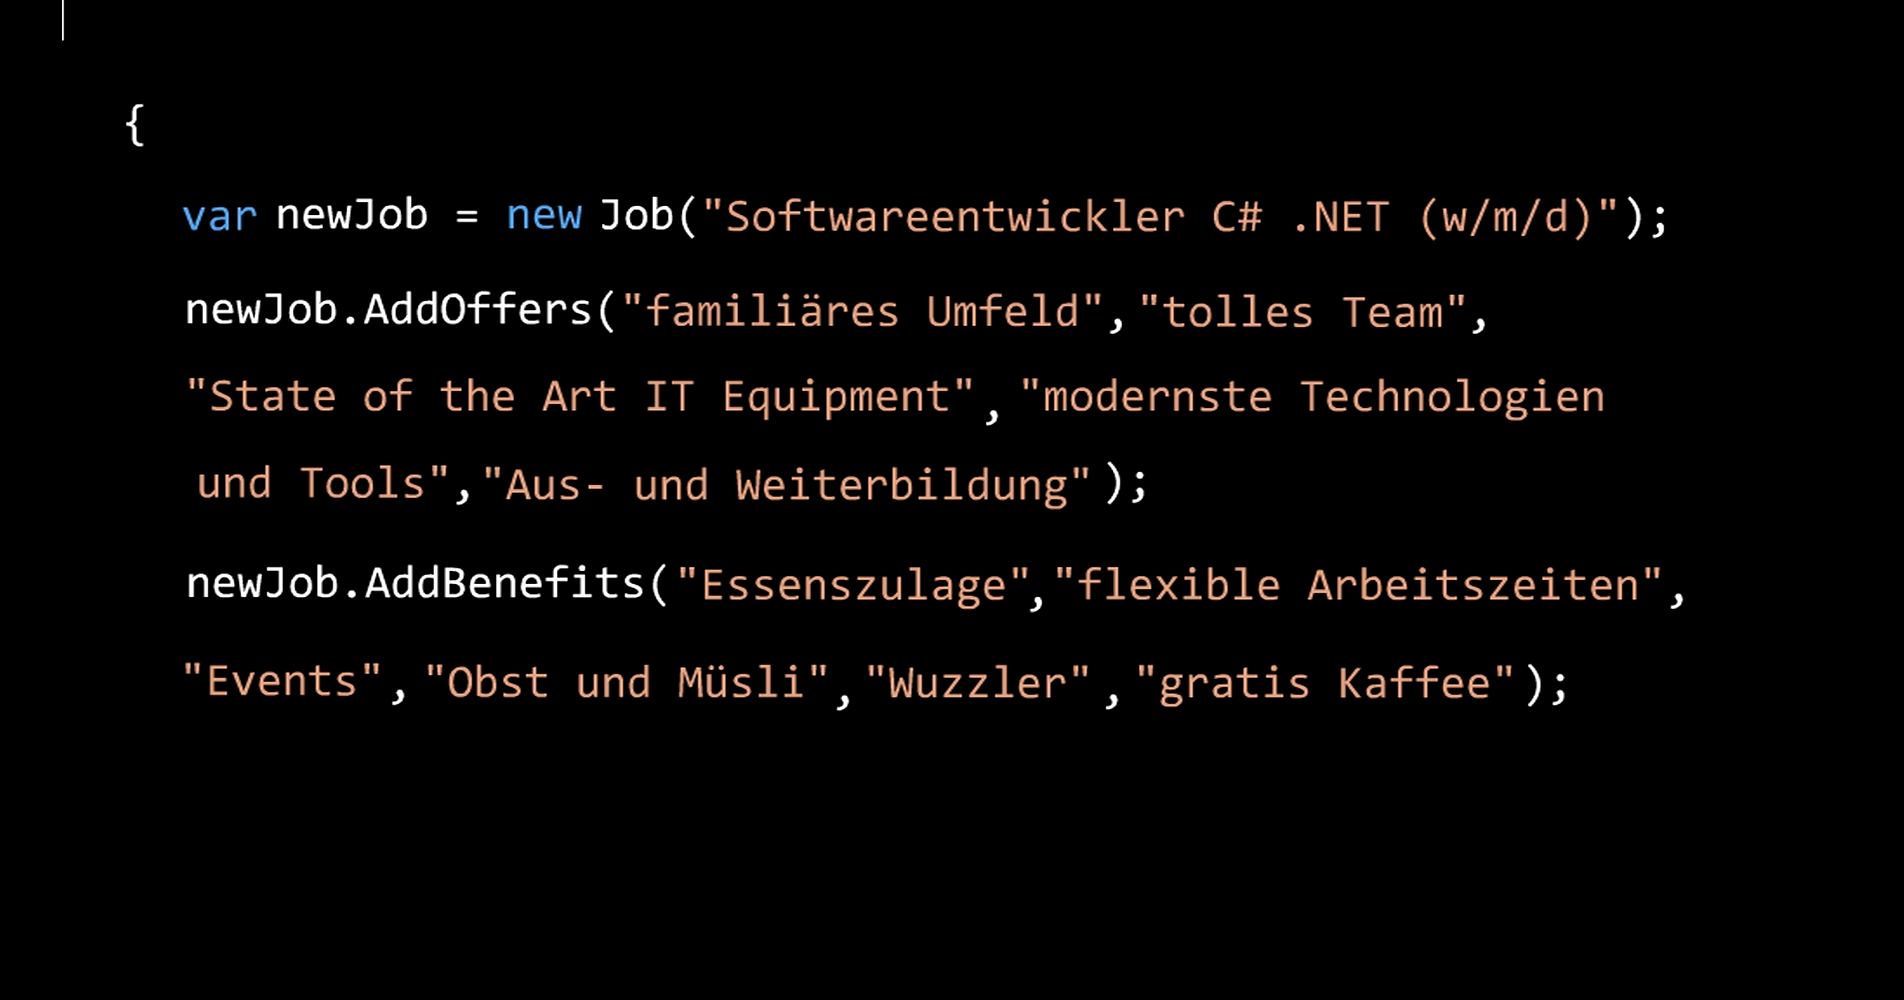 Softwareentwickler C# .NET